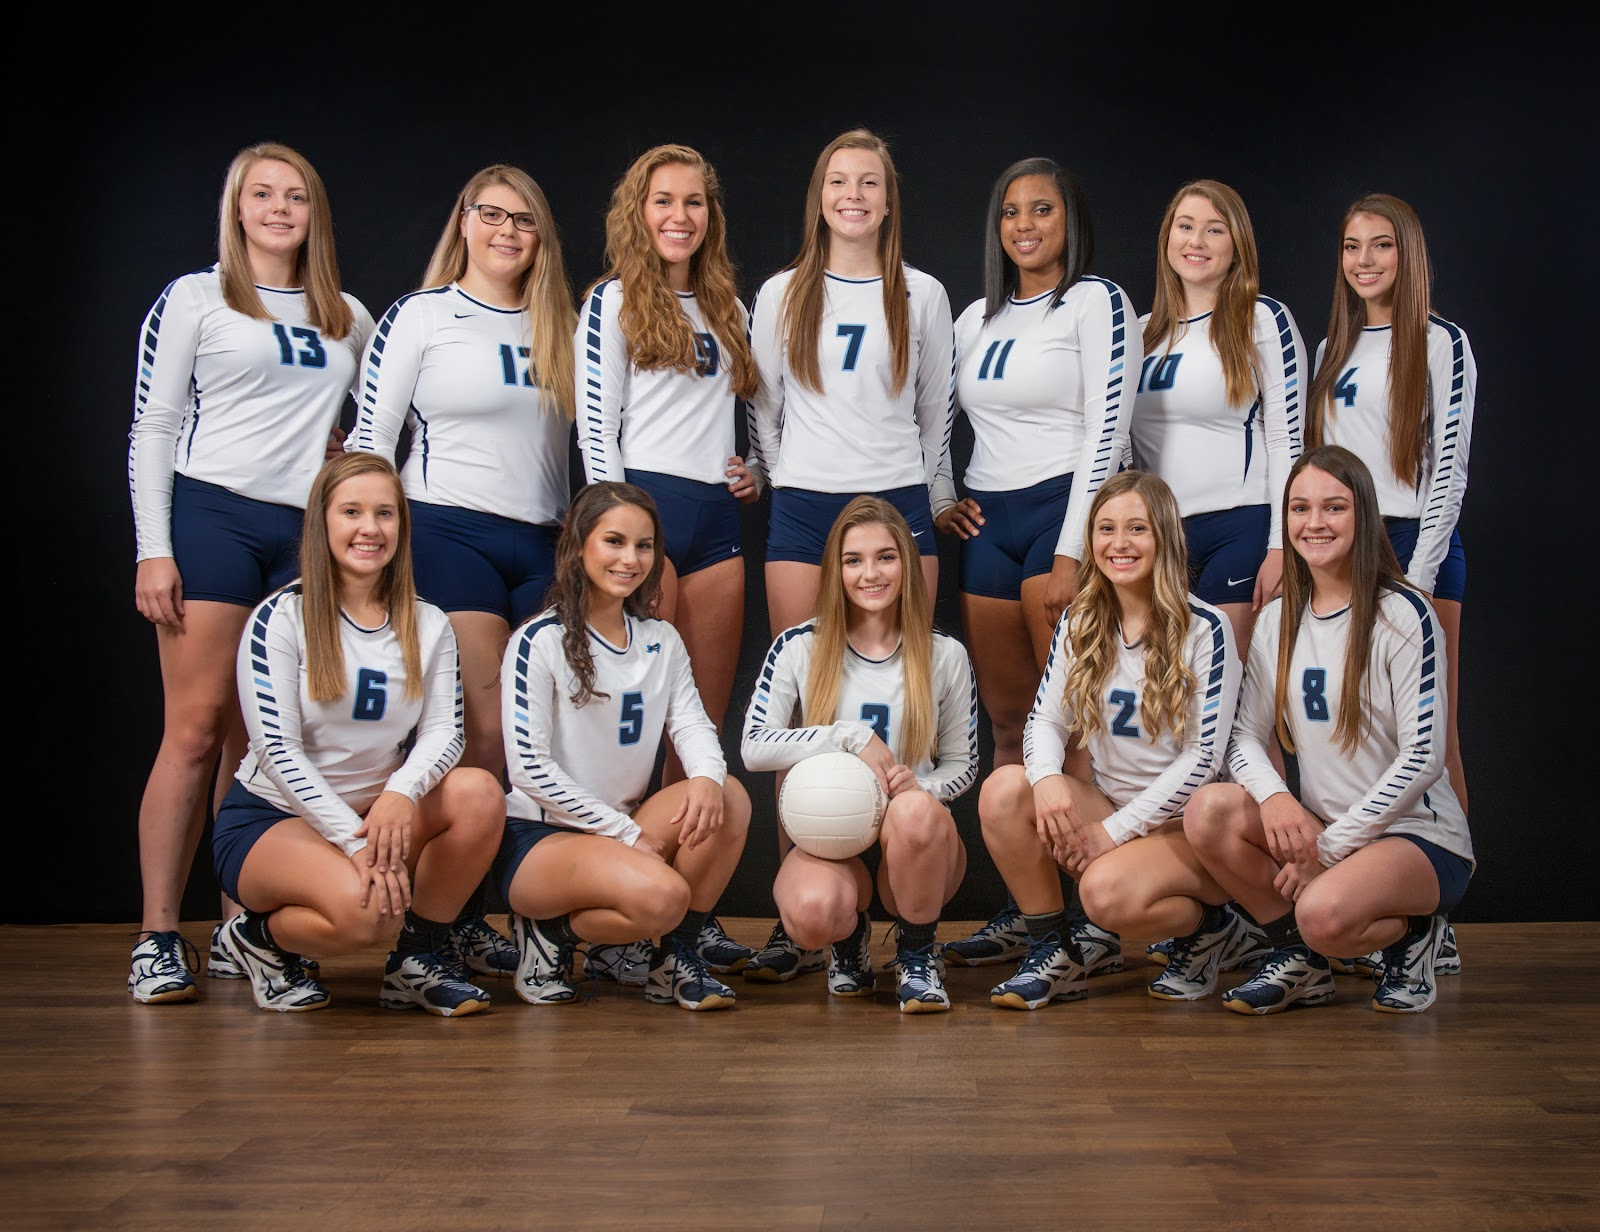 Brazoswood Volleyball Team